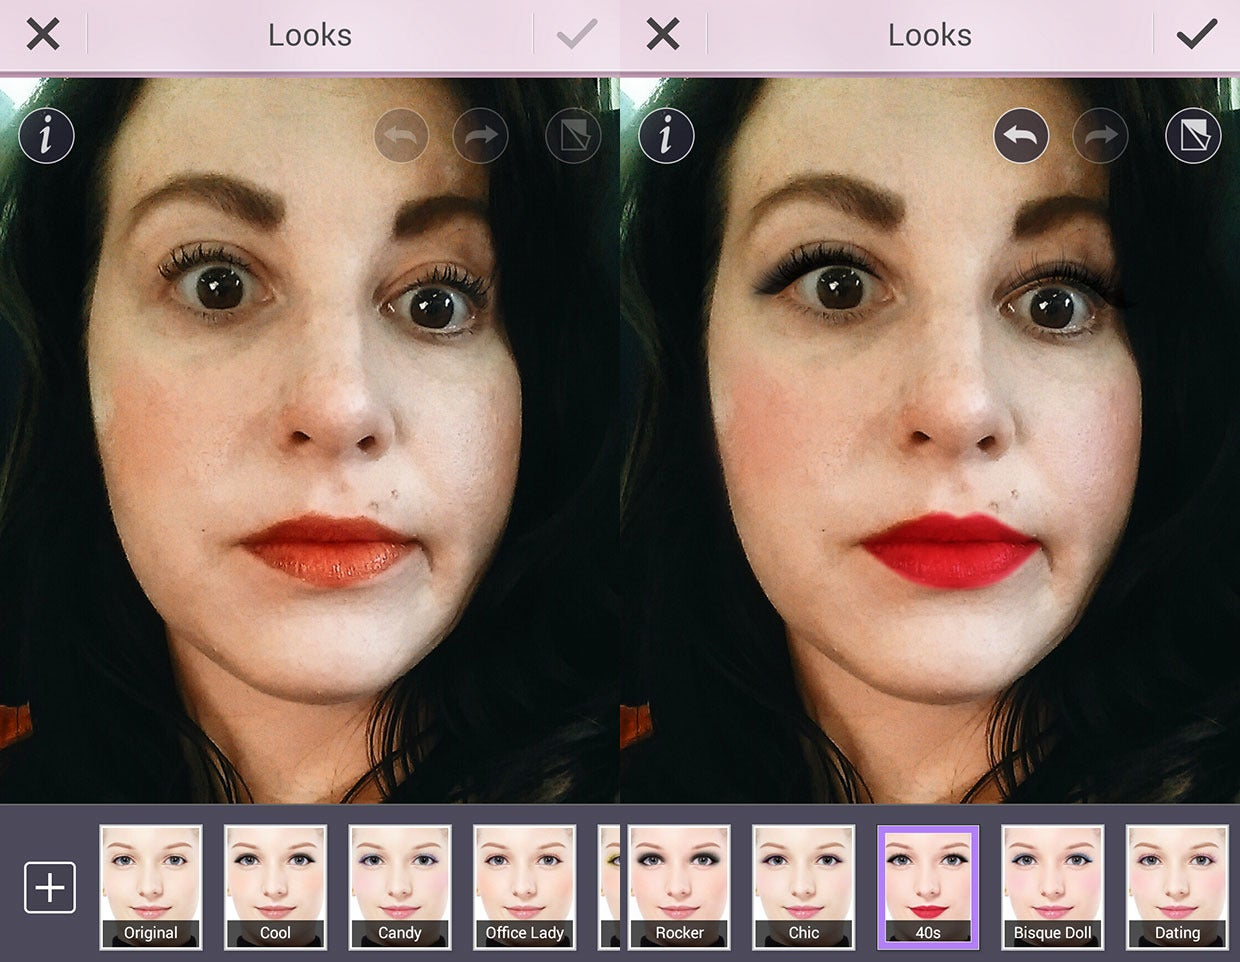 8 weird Android selfie apps that give you a virtual makeover